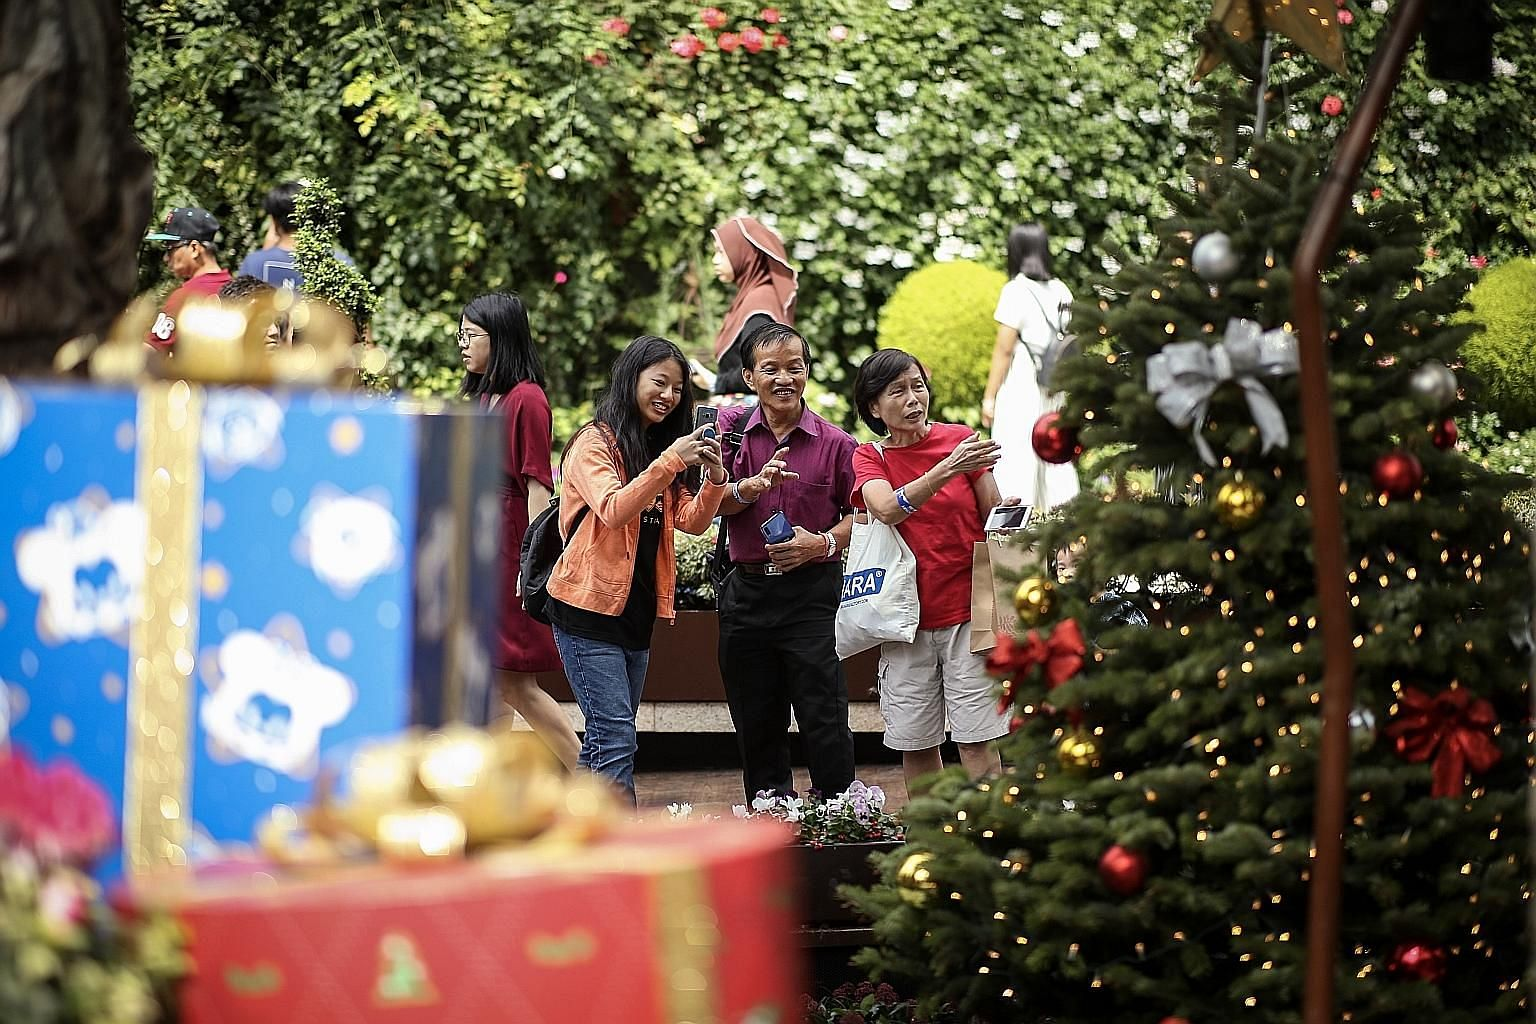 Mr Fok Hup Seng, a hospital cleaner, touring the Christmas display at the Flower Dome in Gardens by the Bay yesterday with his daughter Xin Yi and sister Hup Yee, 66, a retiree. They were among 350 lower-income union members and their families at an